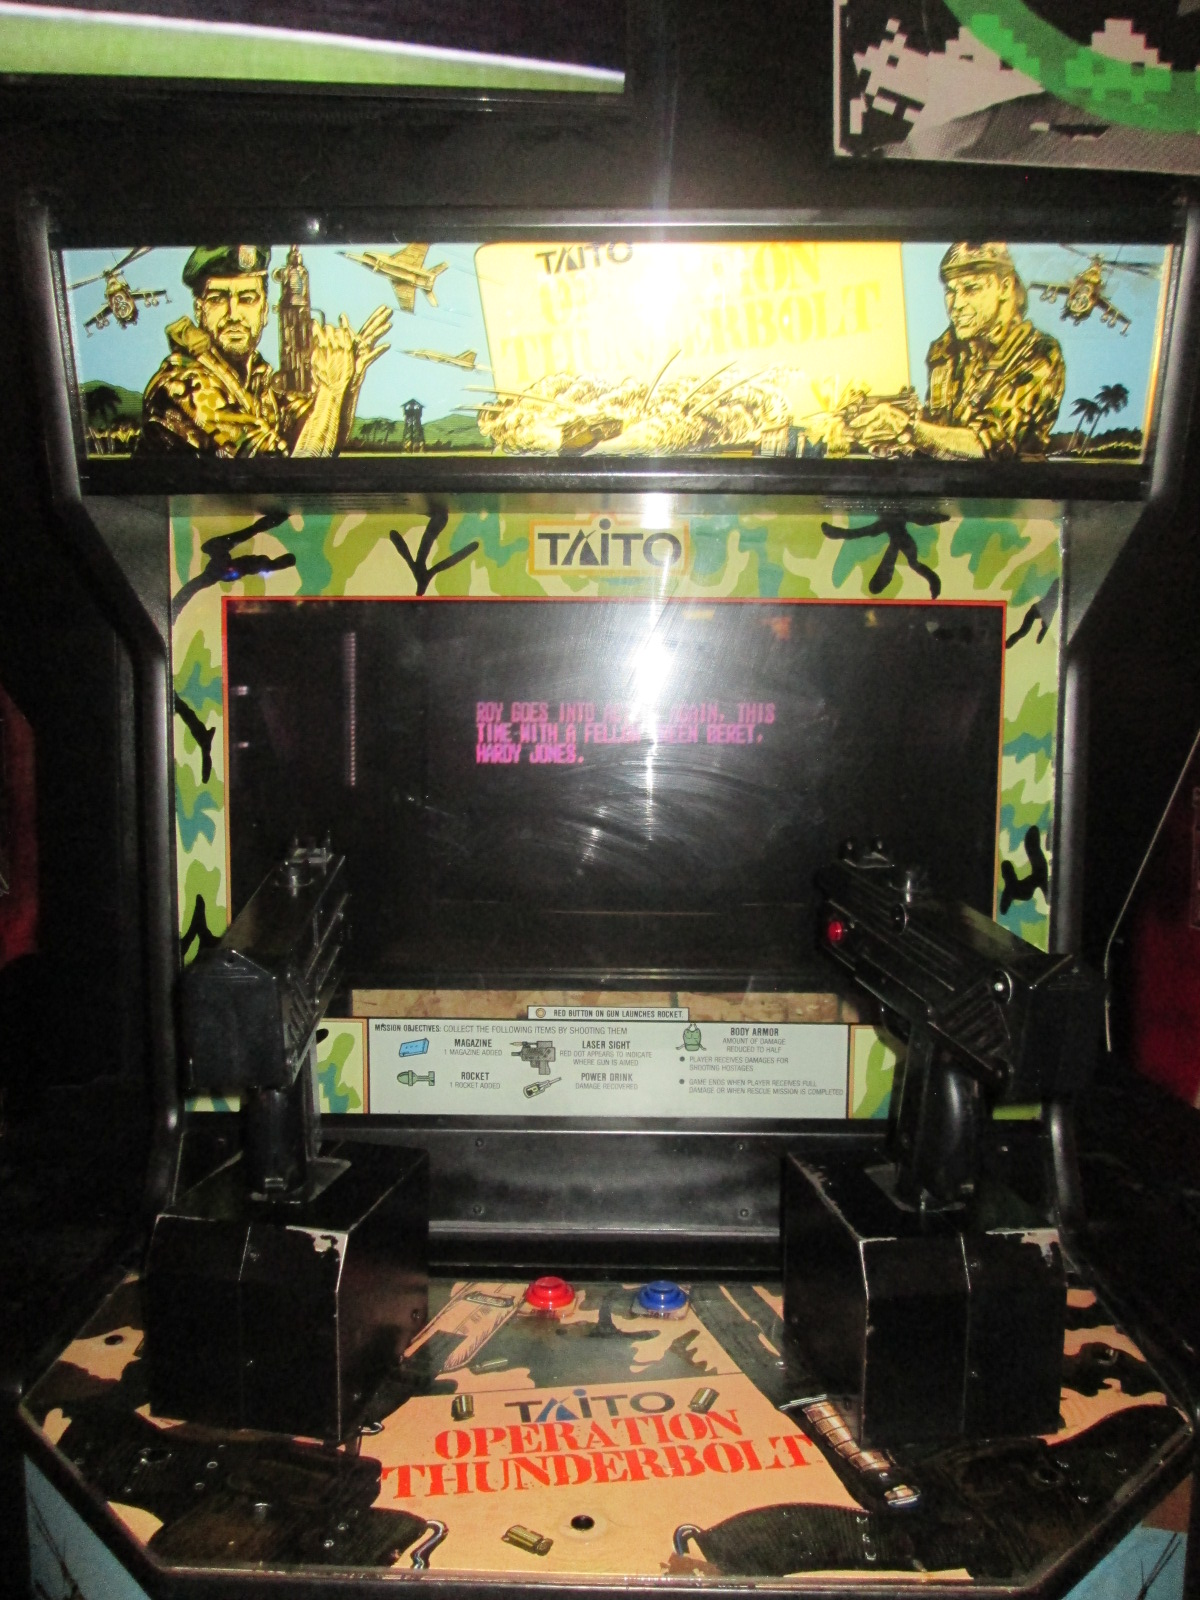 ed1475: Operation Thunderbolt (Arcade) 24,750 points on 2016-09-11 16:14:54